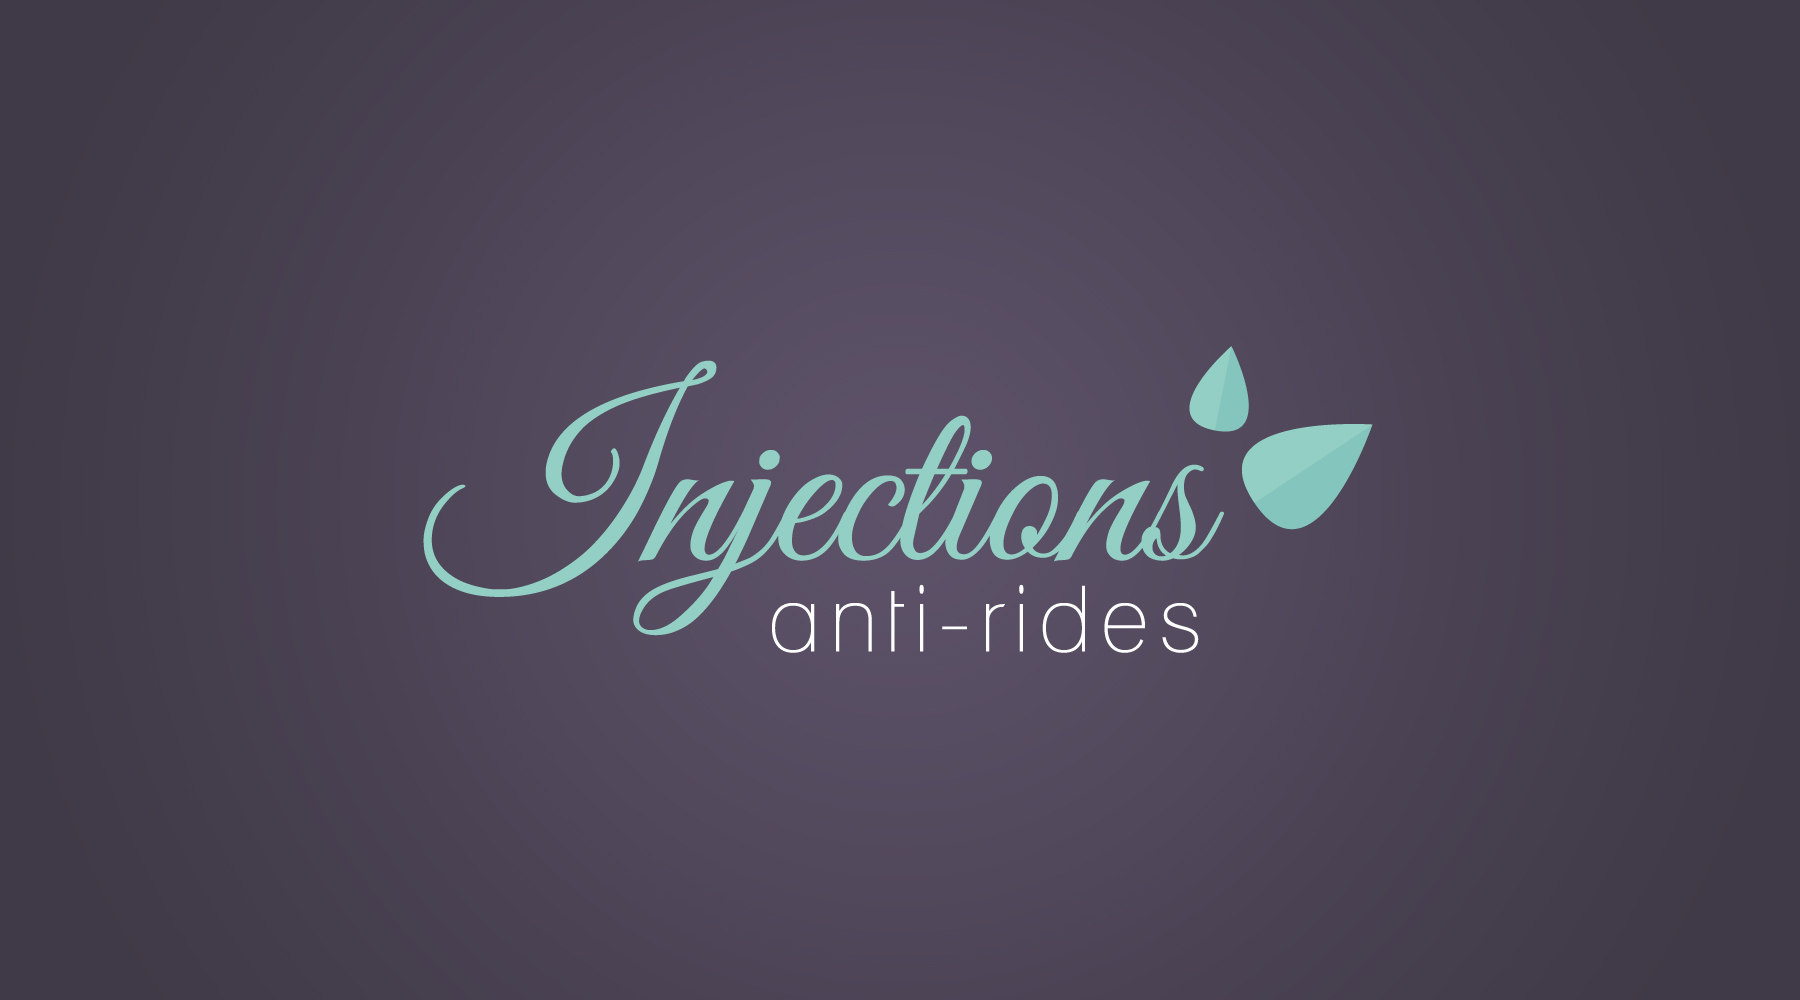 Injections anti-rides